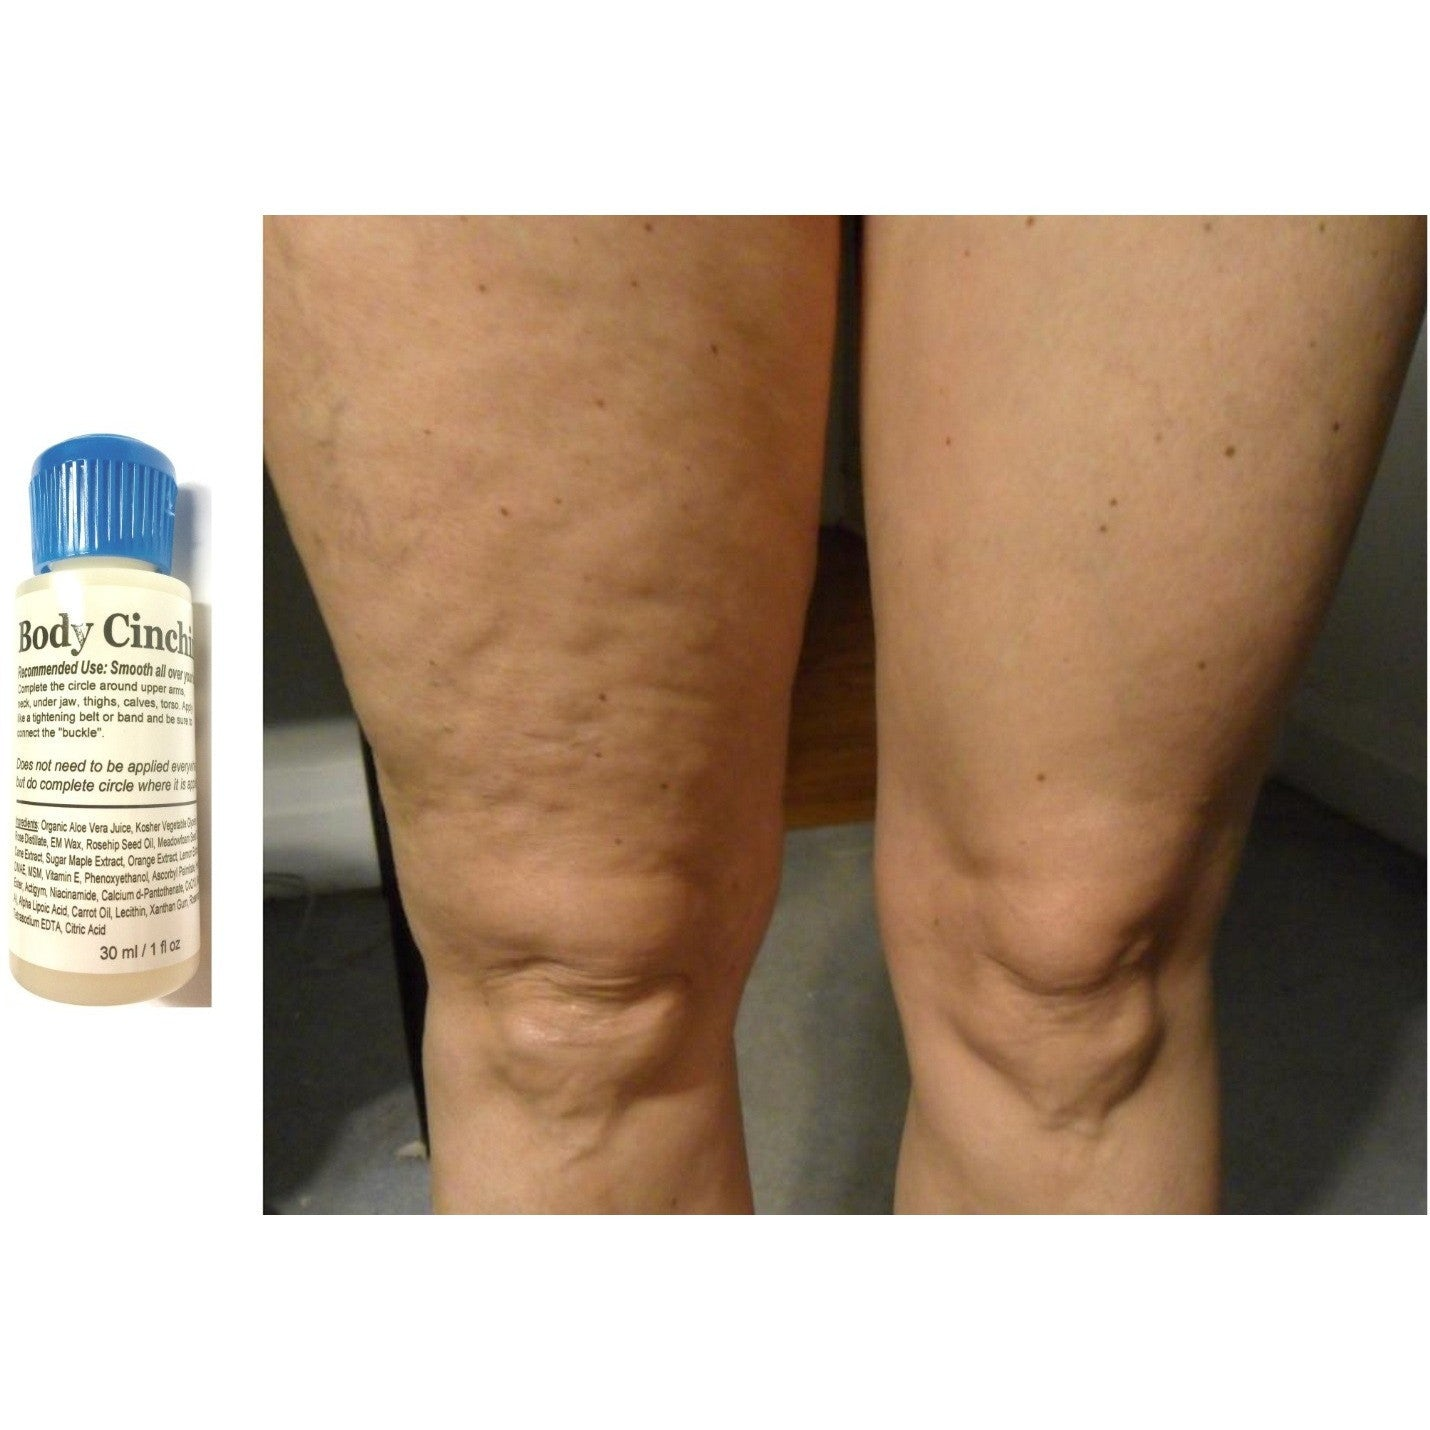 SAMPLE ModelSupplies Body Cinching Lotion DMAE ALA Ester-C HA Cinch Skin Tightening Stretchmarks Conceal Cellulite 1oz - ModelSupplies